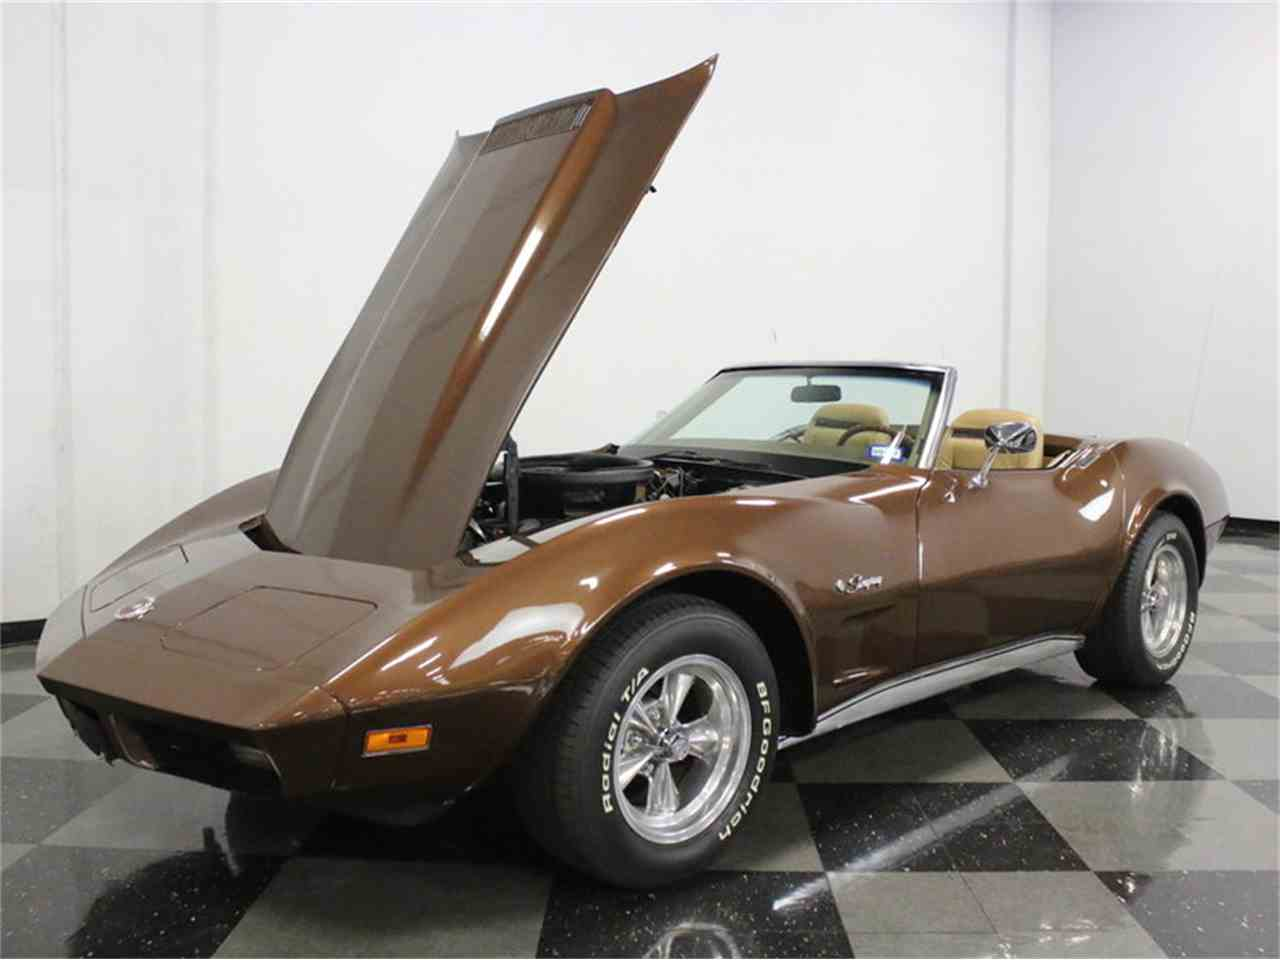 Large Picture of 1974 Chevrolet Corvette - $22,995.00 Offered by Streetside Classics - Dallas / Fort Worth - LBK6